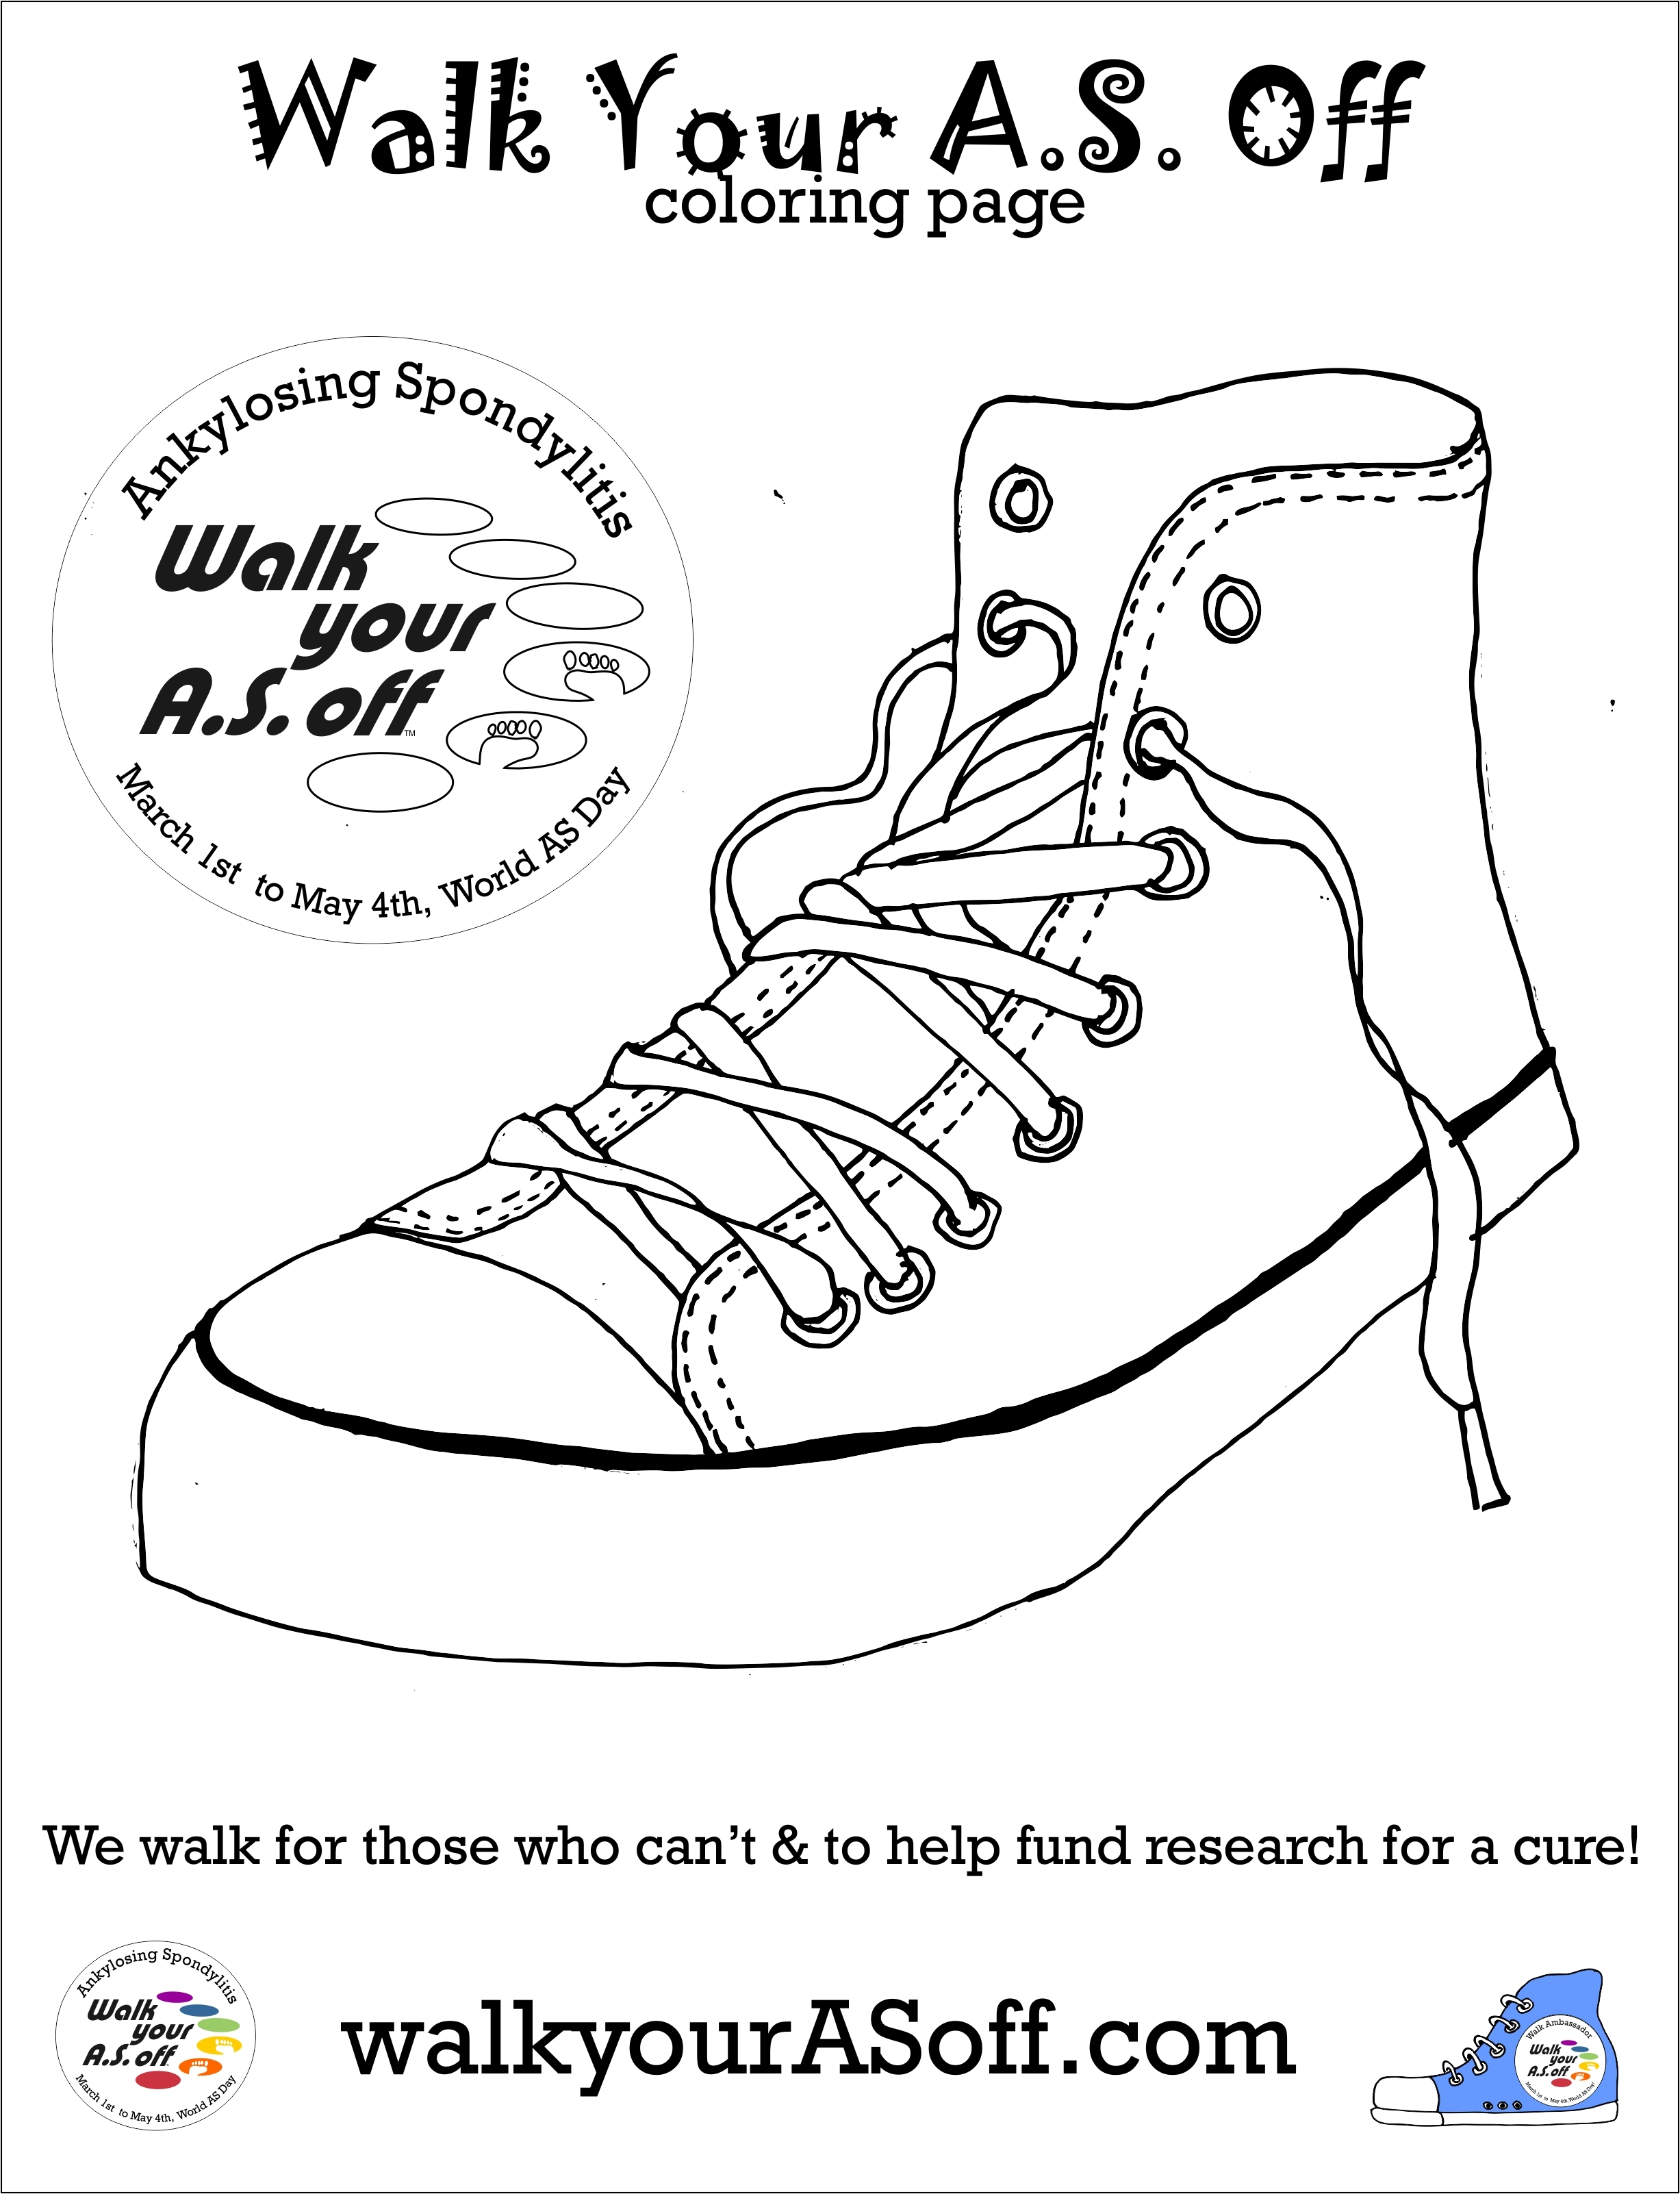 25 Sneaker Coloring Page Compilation | FREE COLORING PAGES - Part 2